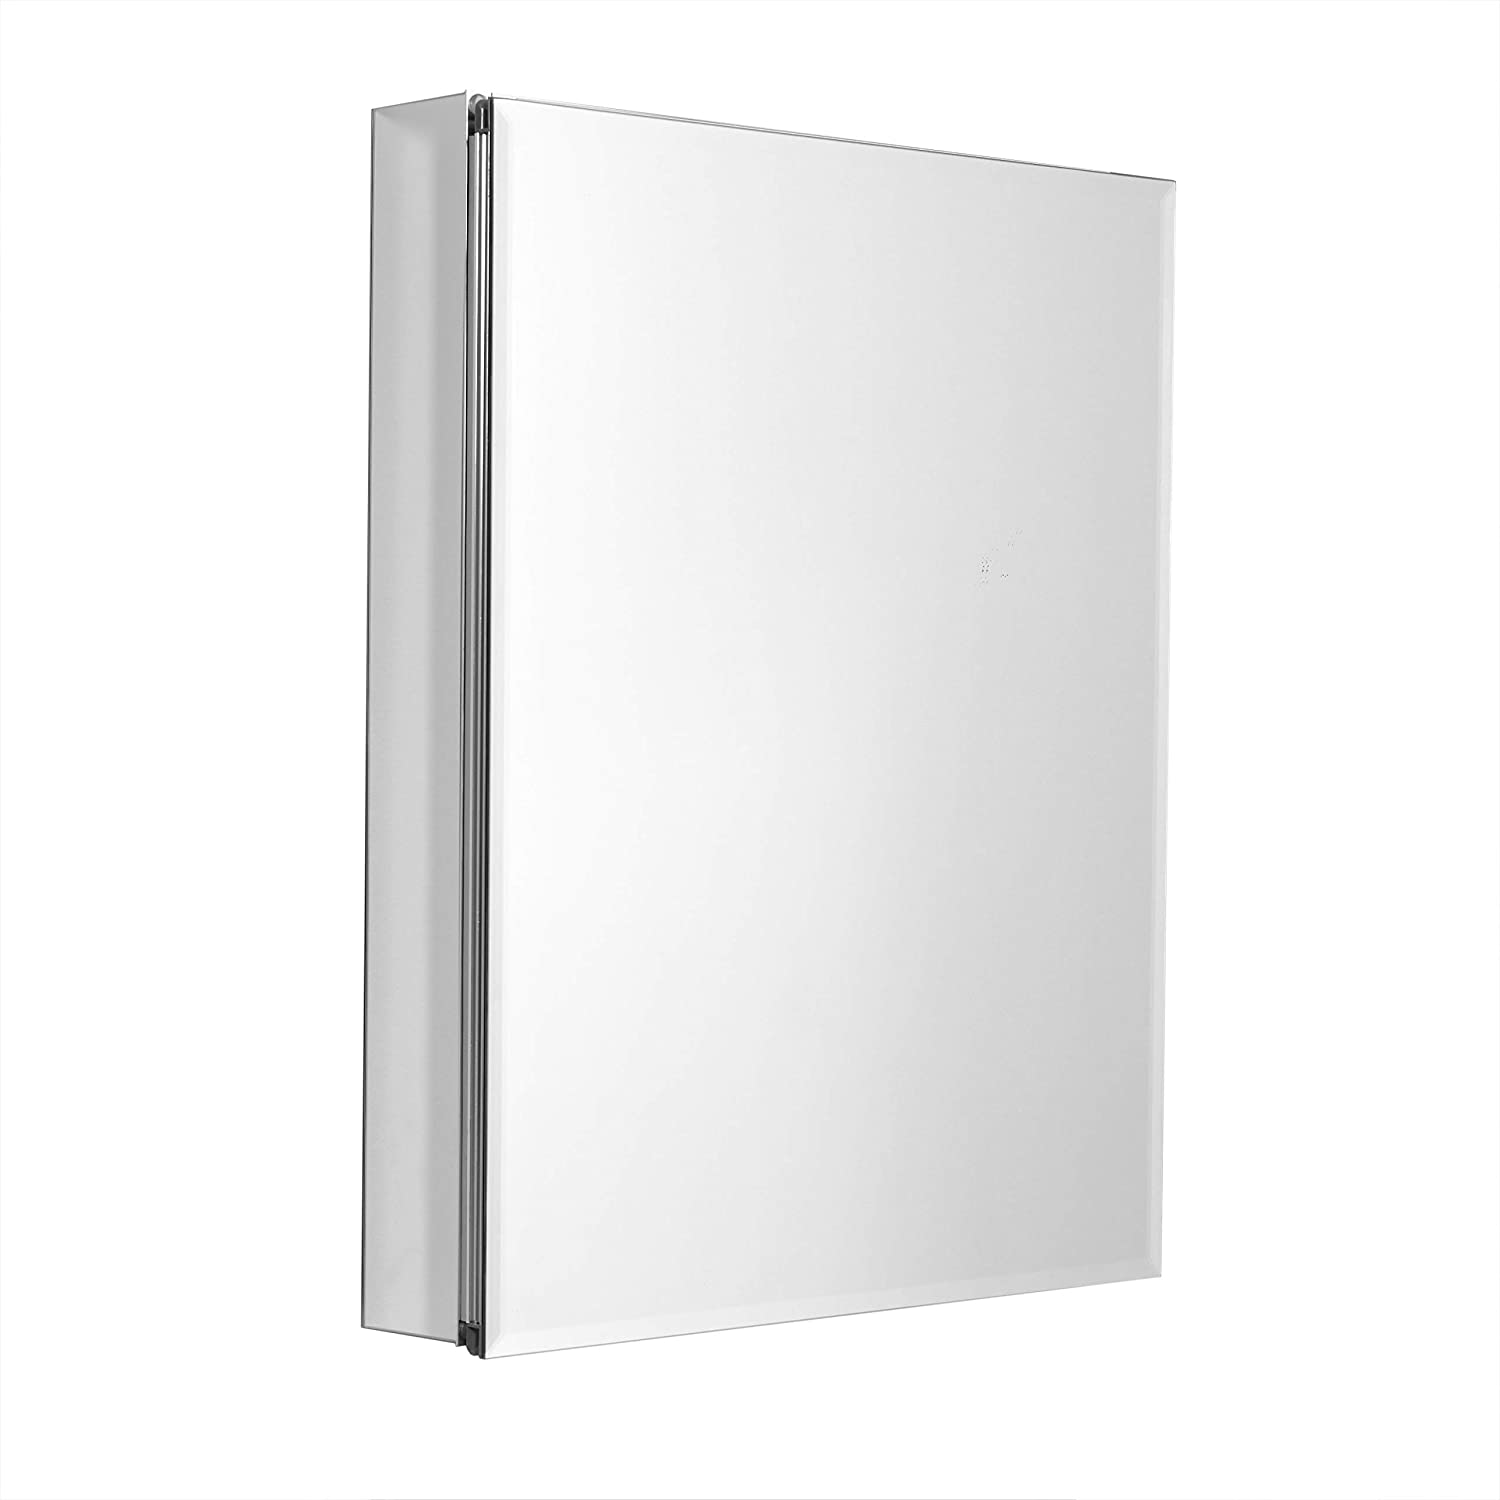 ZPC Zenith Products Corporation, Frameless Designer Series by Zenith Aluminum Beveled Mirror Medicine Cabinet, 24 x 30, 24